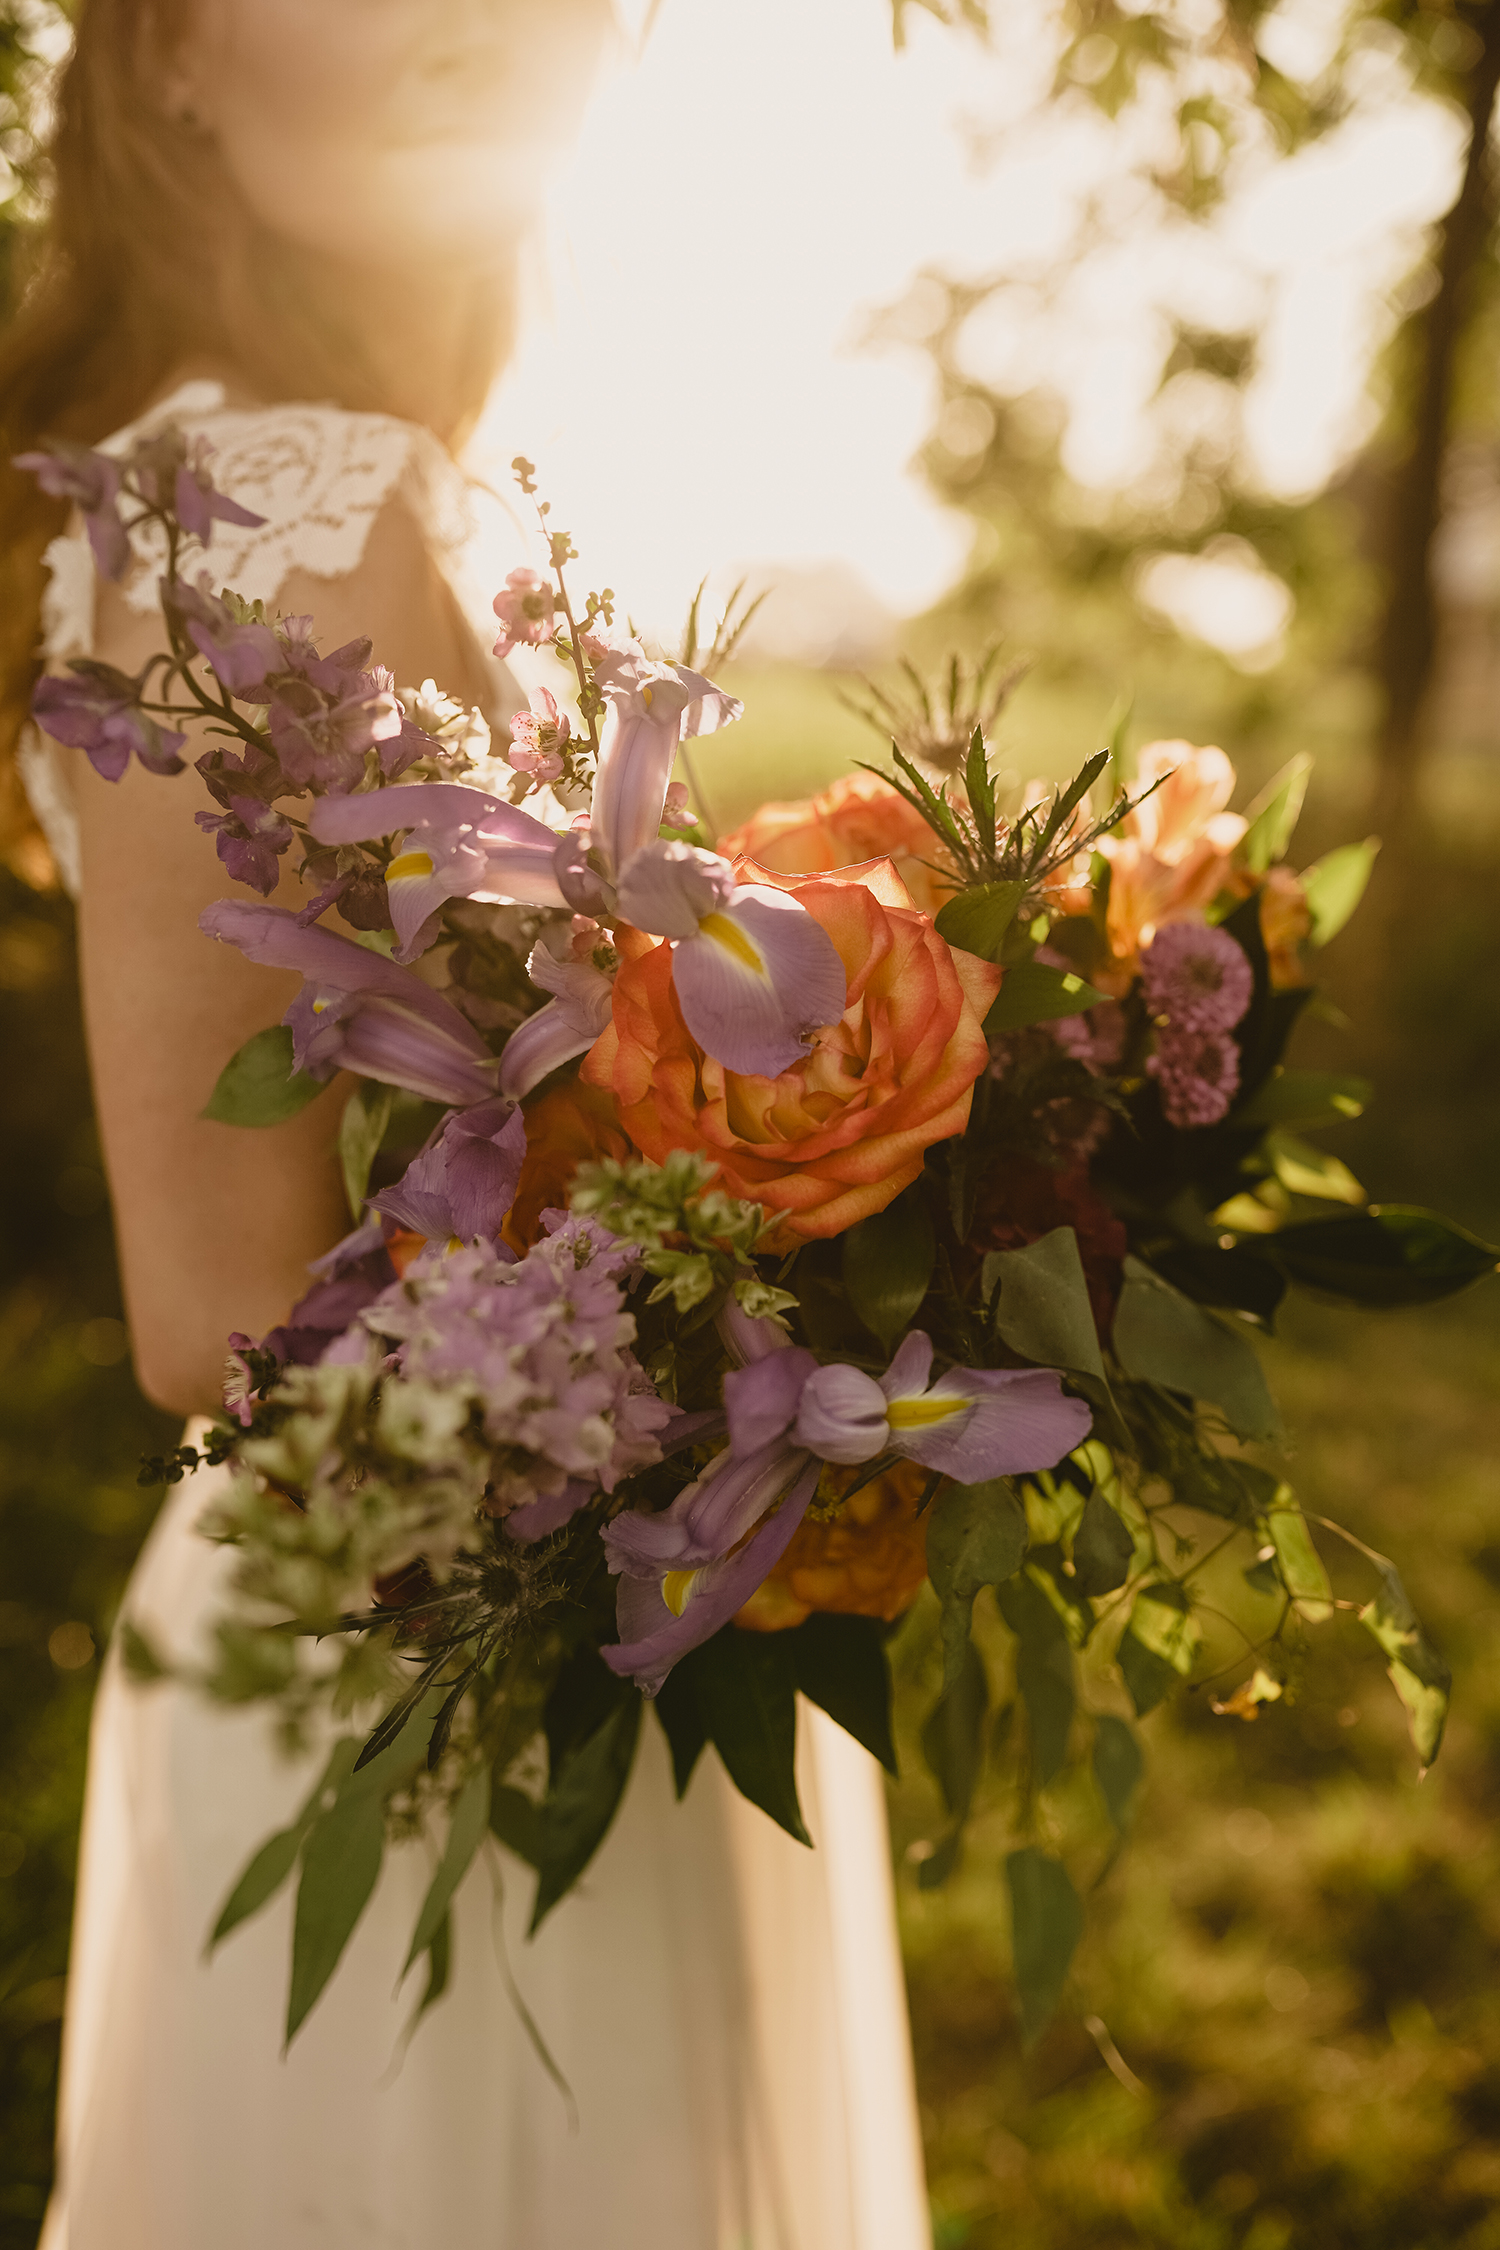 close-up-bouquet-myrtle-mae-iris-aisle-dame-maiden-lavender-blue-floral-raelyn-ramey-photography.jpg